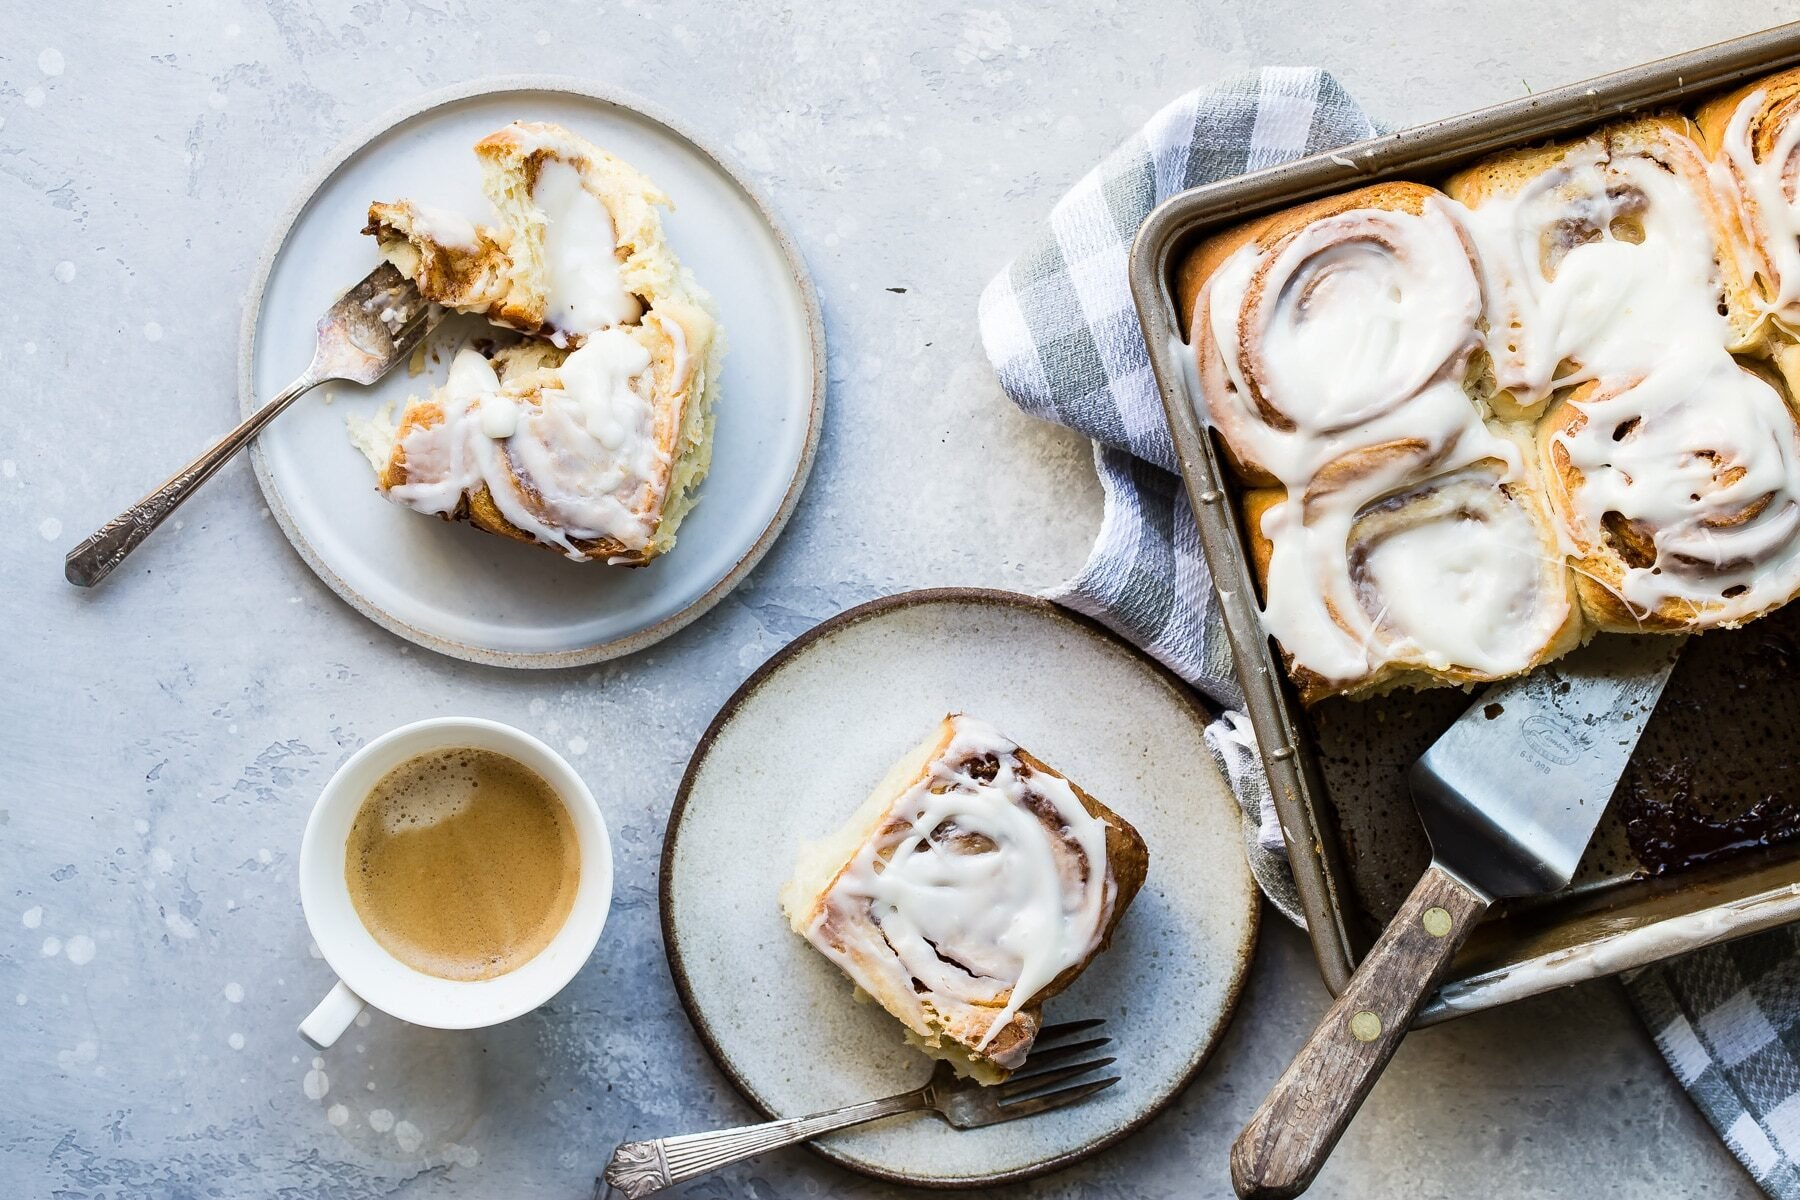 Cinnamon rolls on a plate next to pan of them.